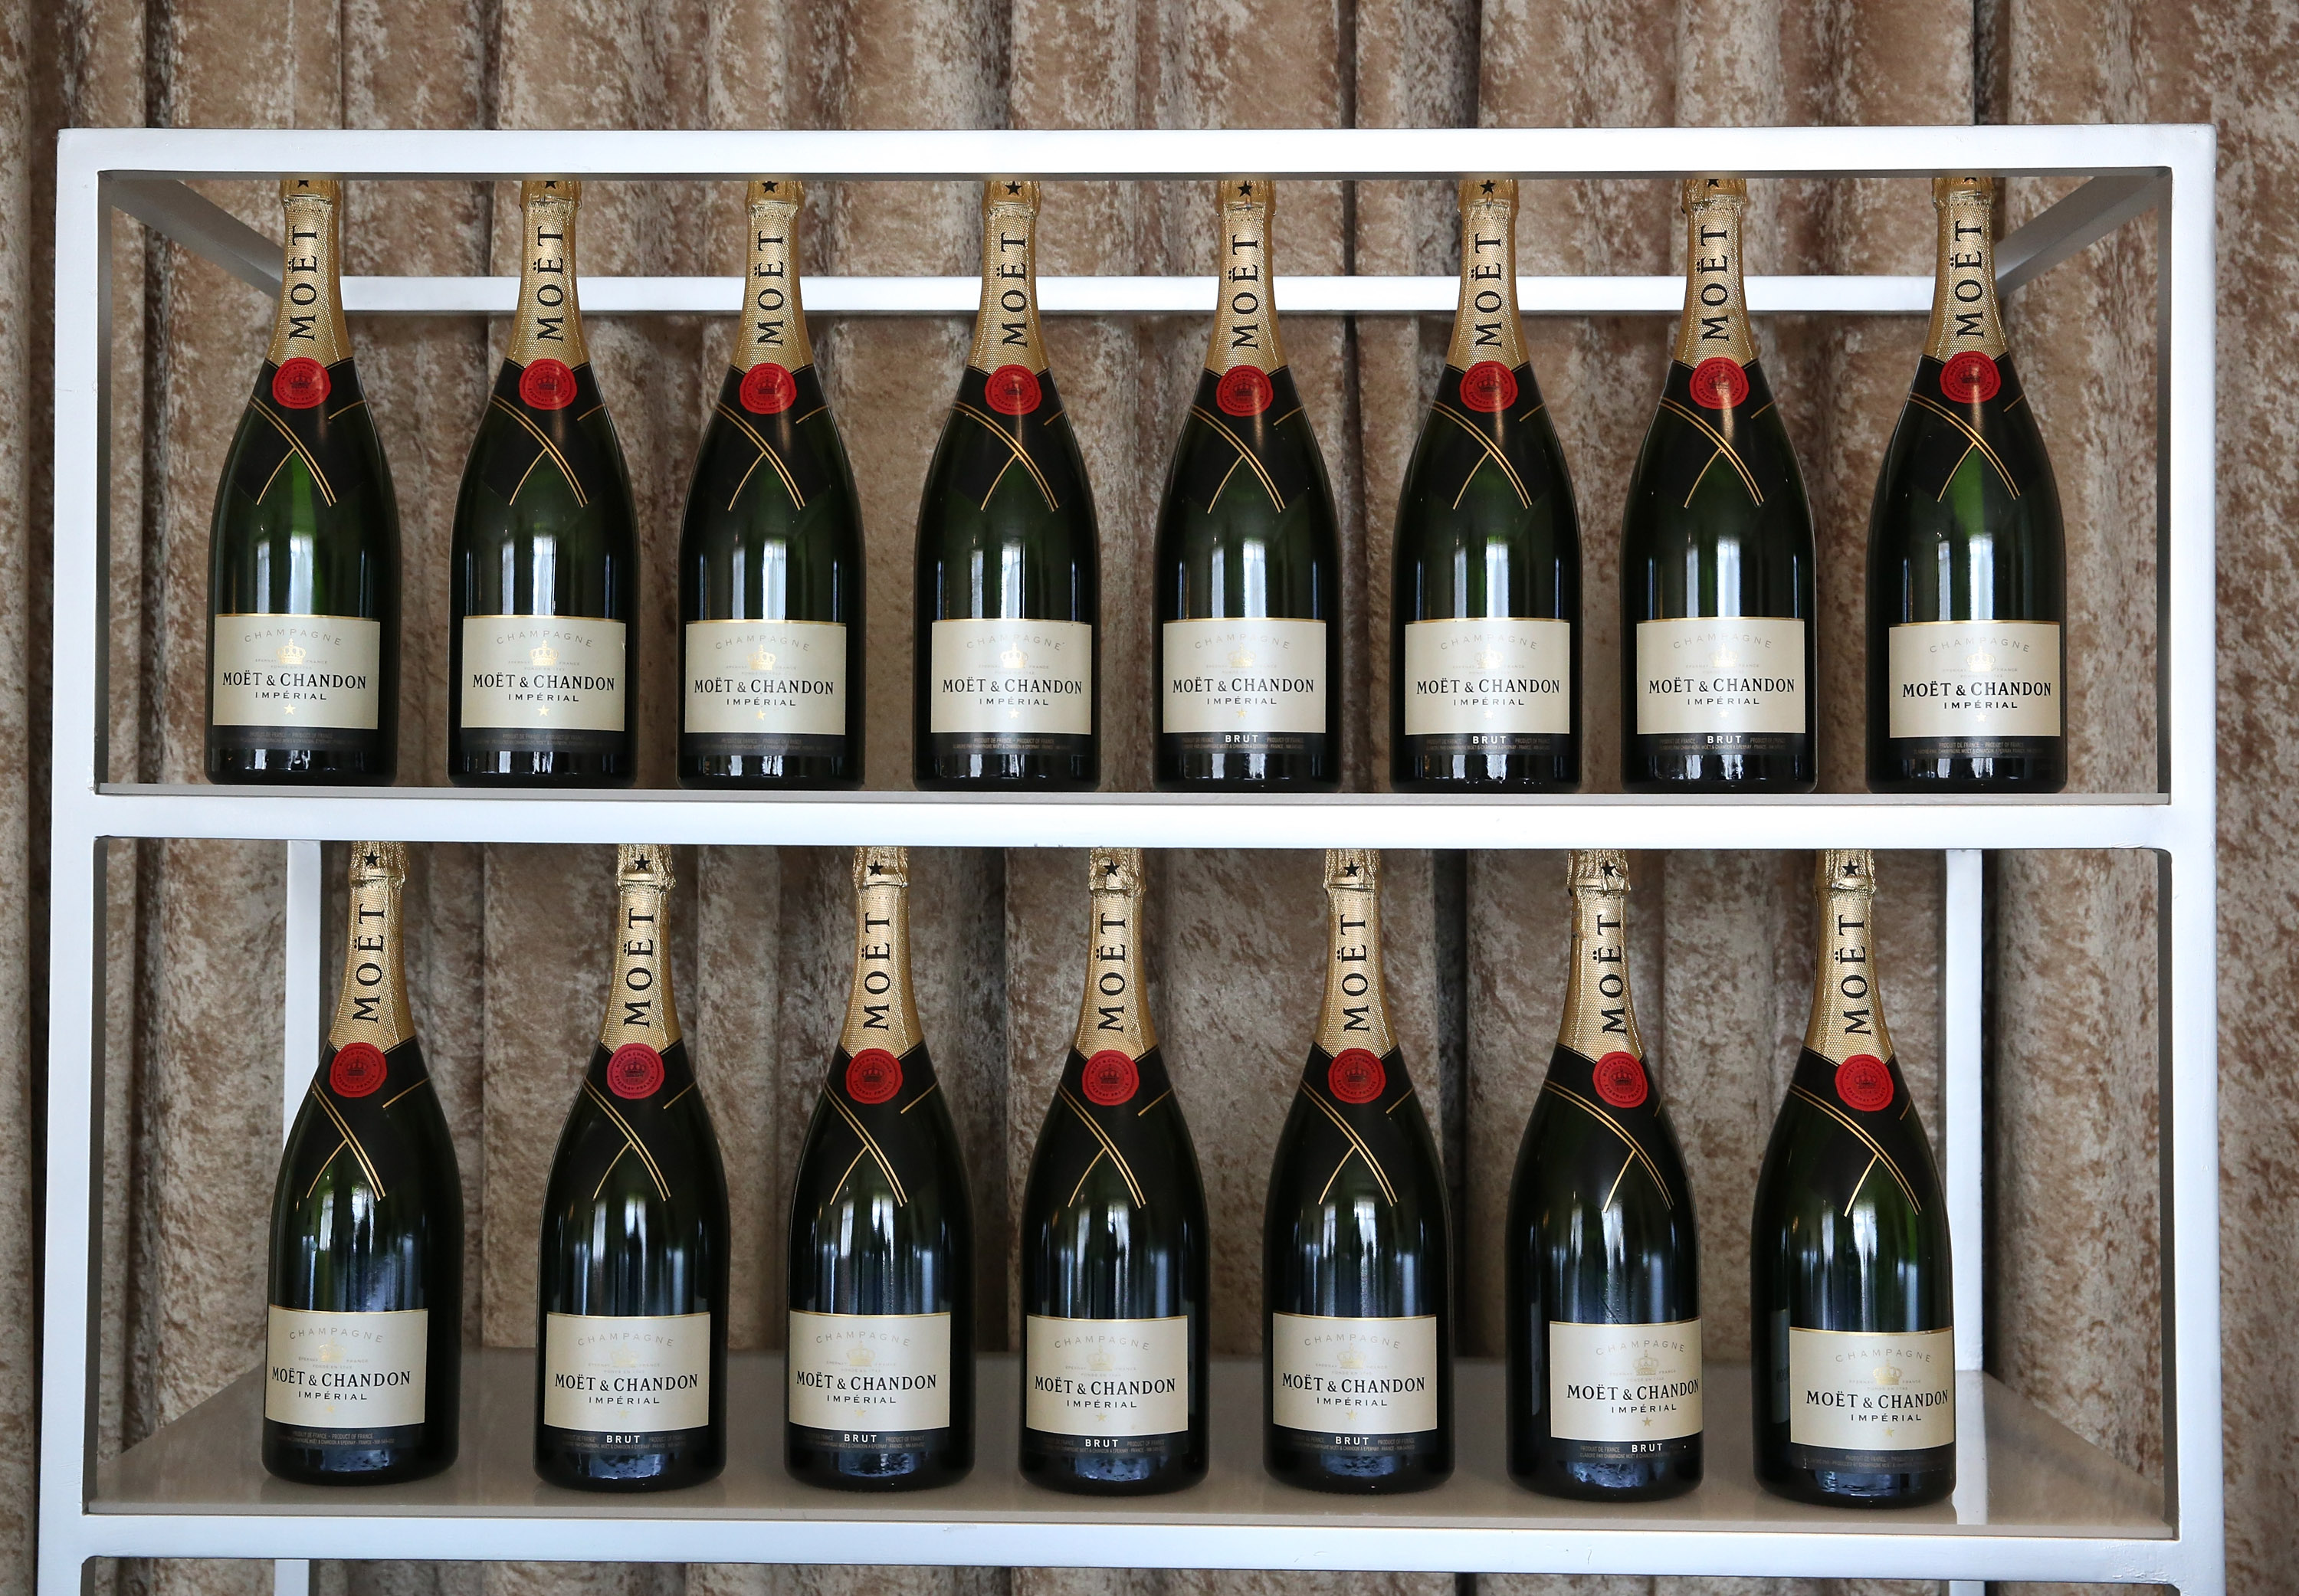 Moet & Chandon at the 73rd Annual Golden Globe Awards Social Media Reception at The Beverly Hilton Hotel on January 10, 2016 in Beverly Hills, California.